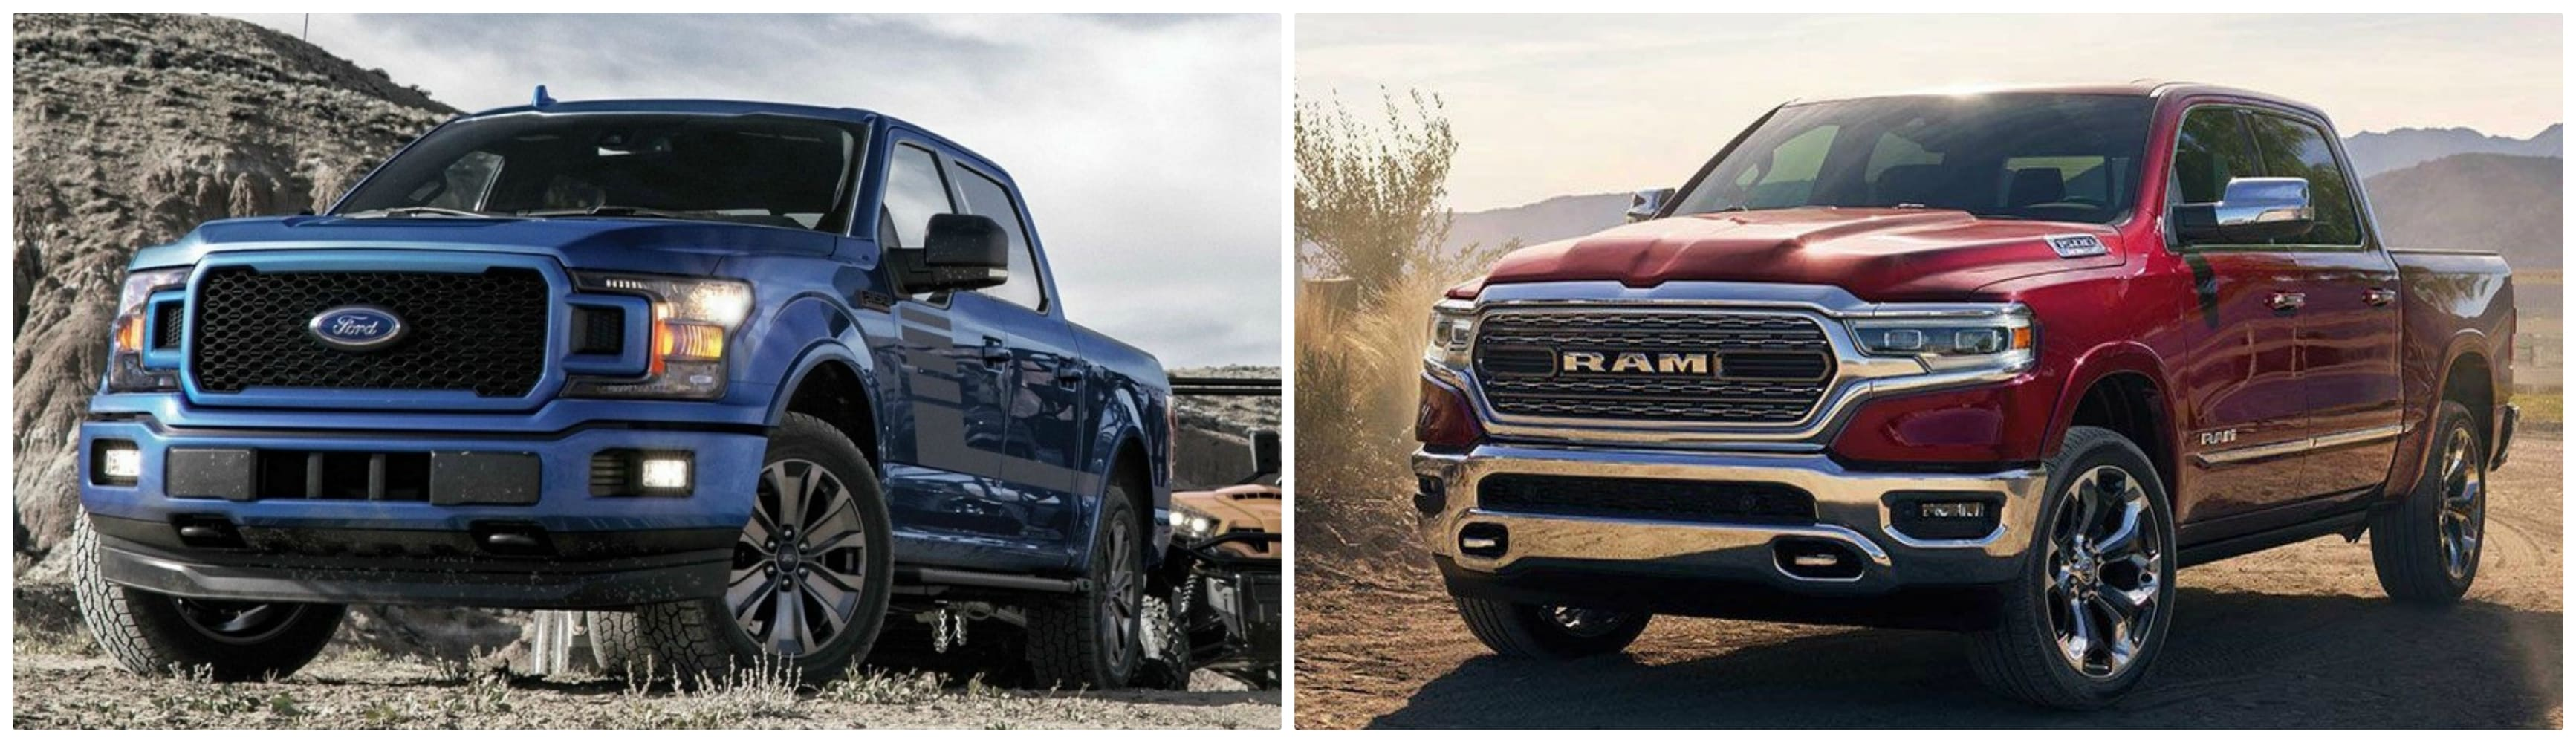 a blue used Ford F150 side-by-side a used red Dodge RAM truck